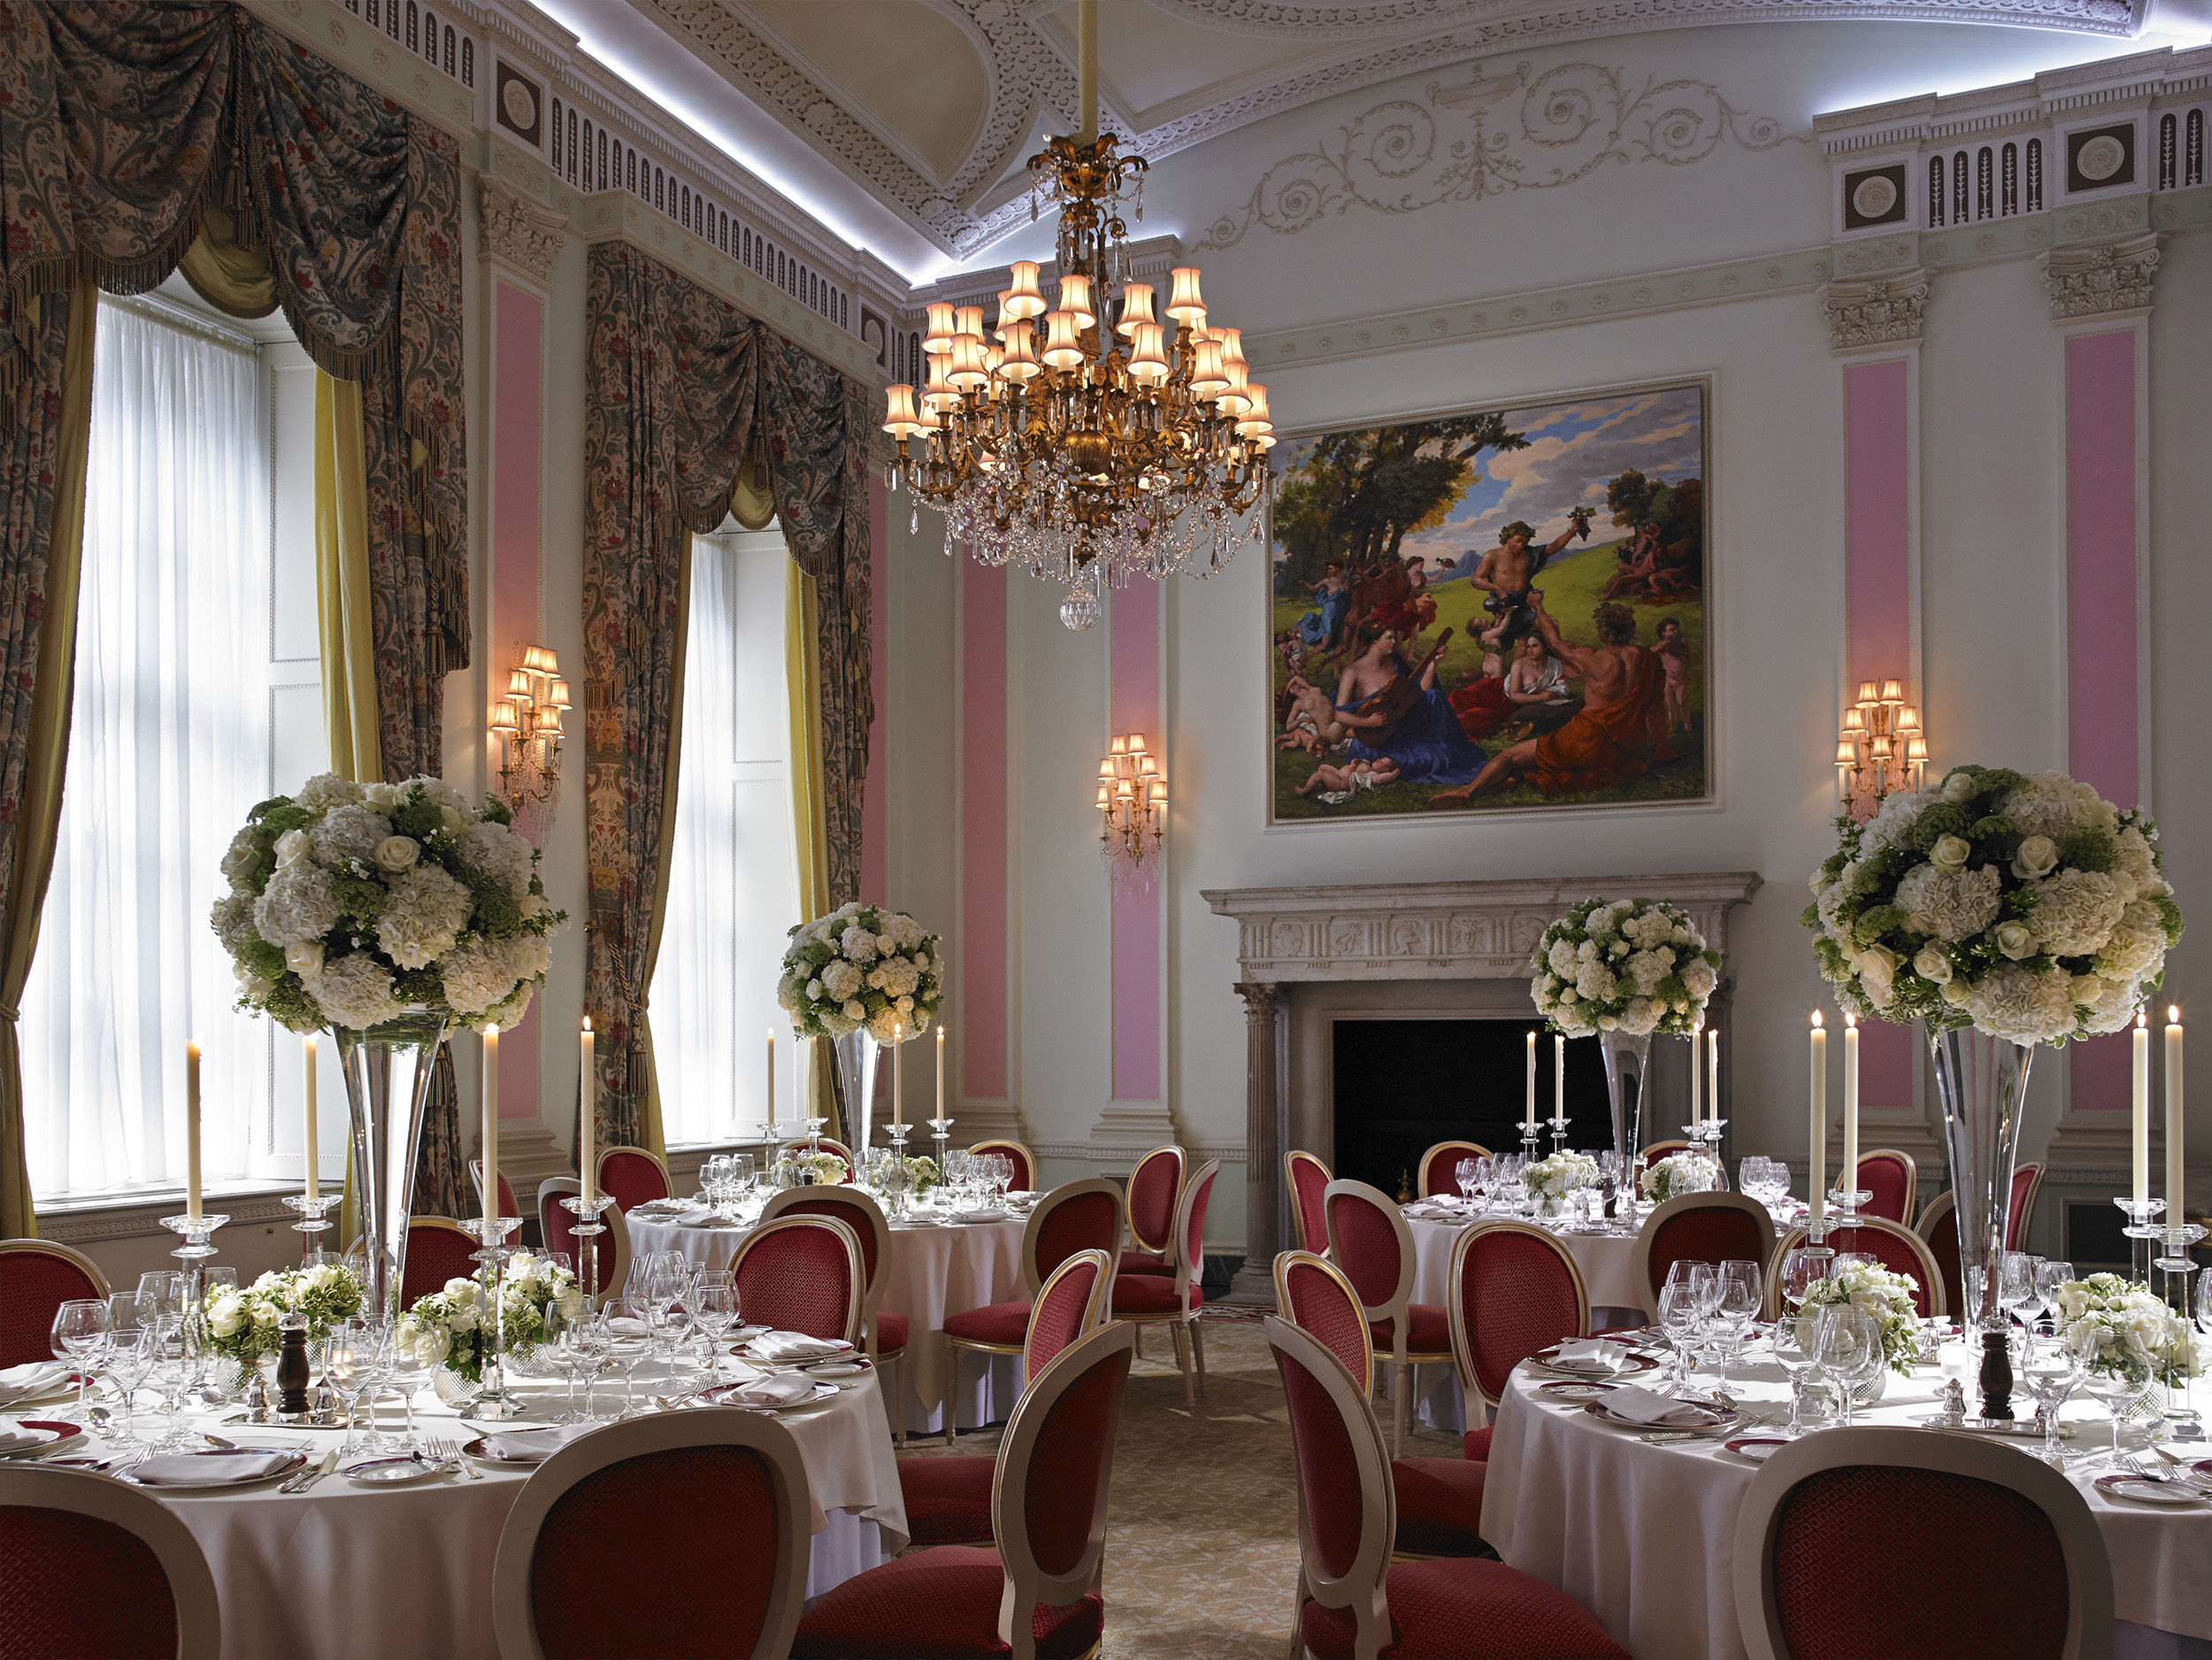 Reserve a table at The Marie Antoinette Suite